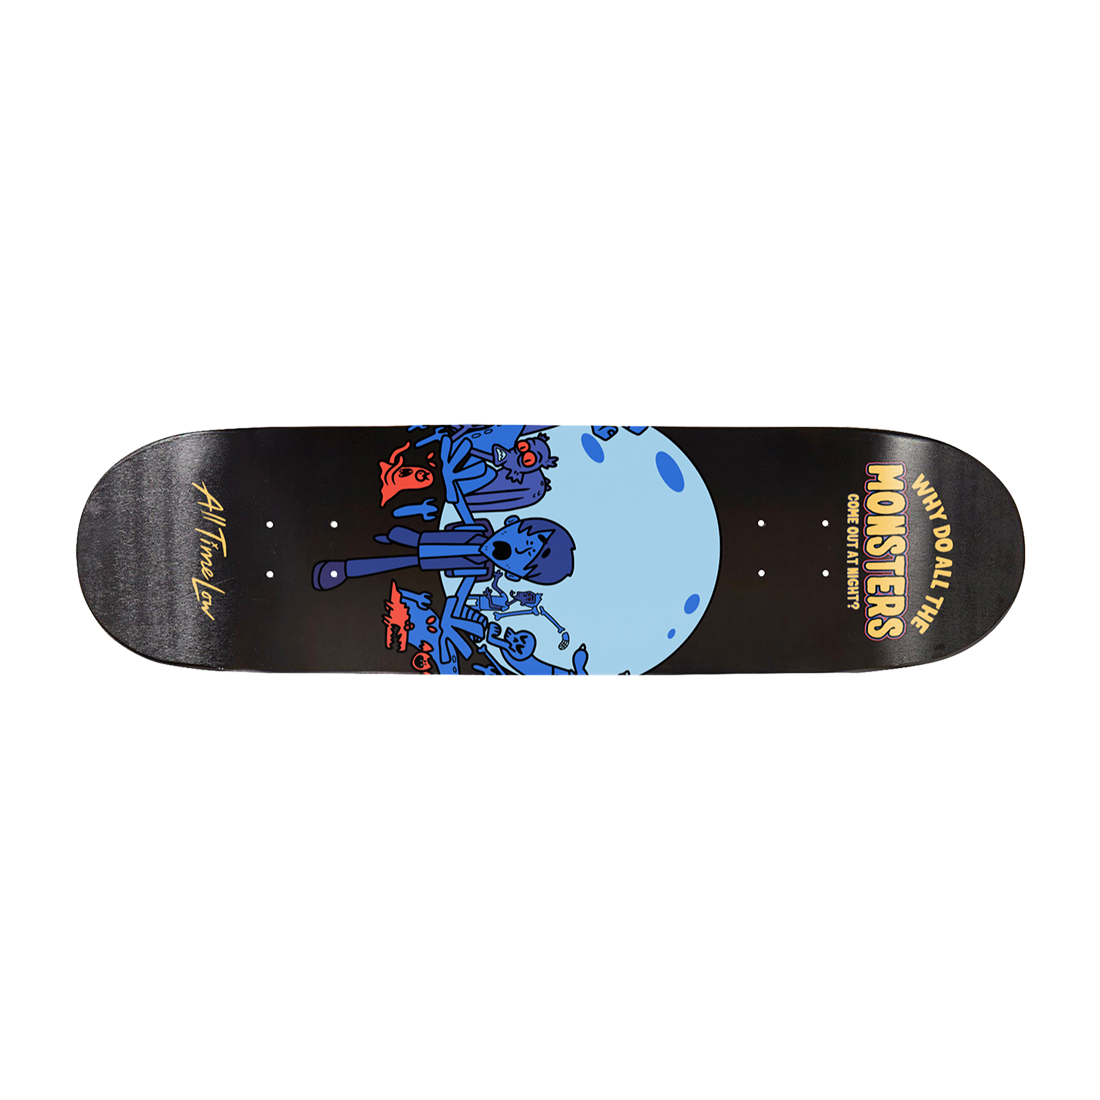 MONSTERS SKATE DECK